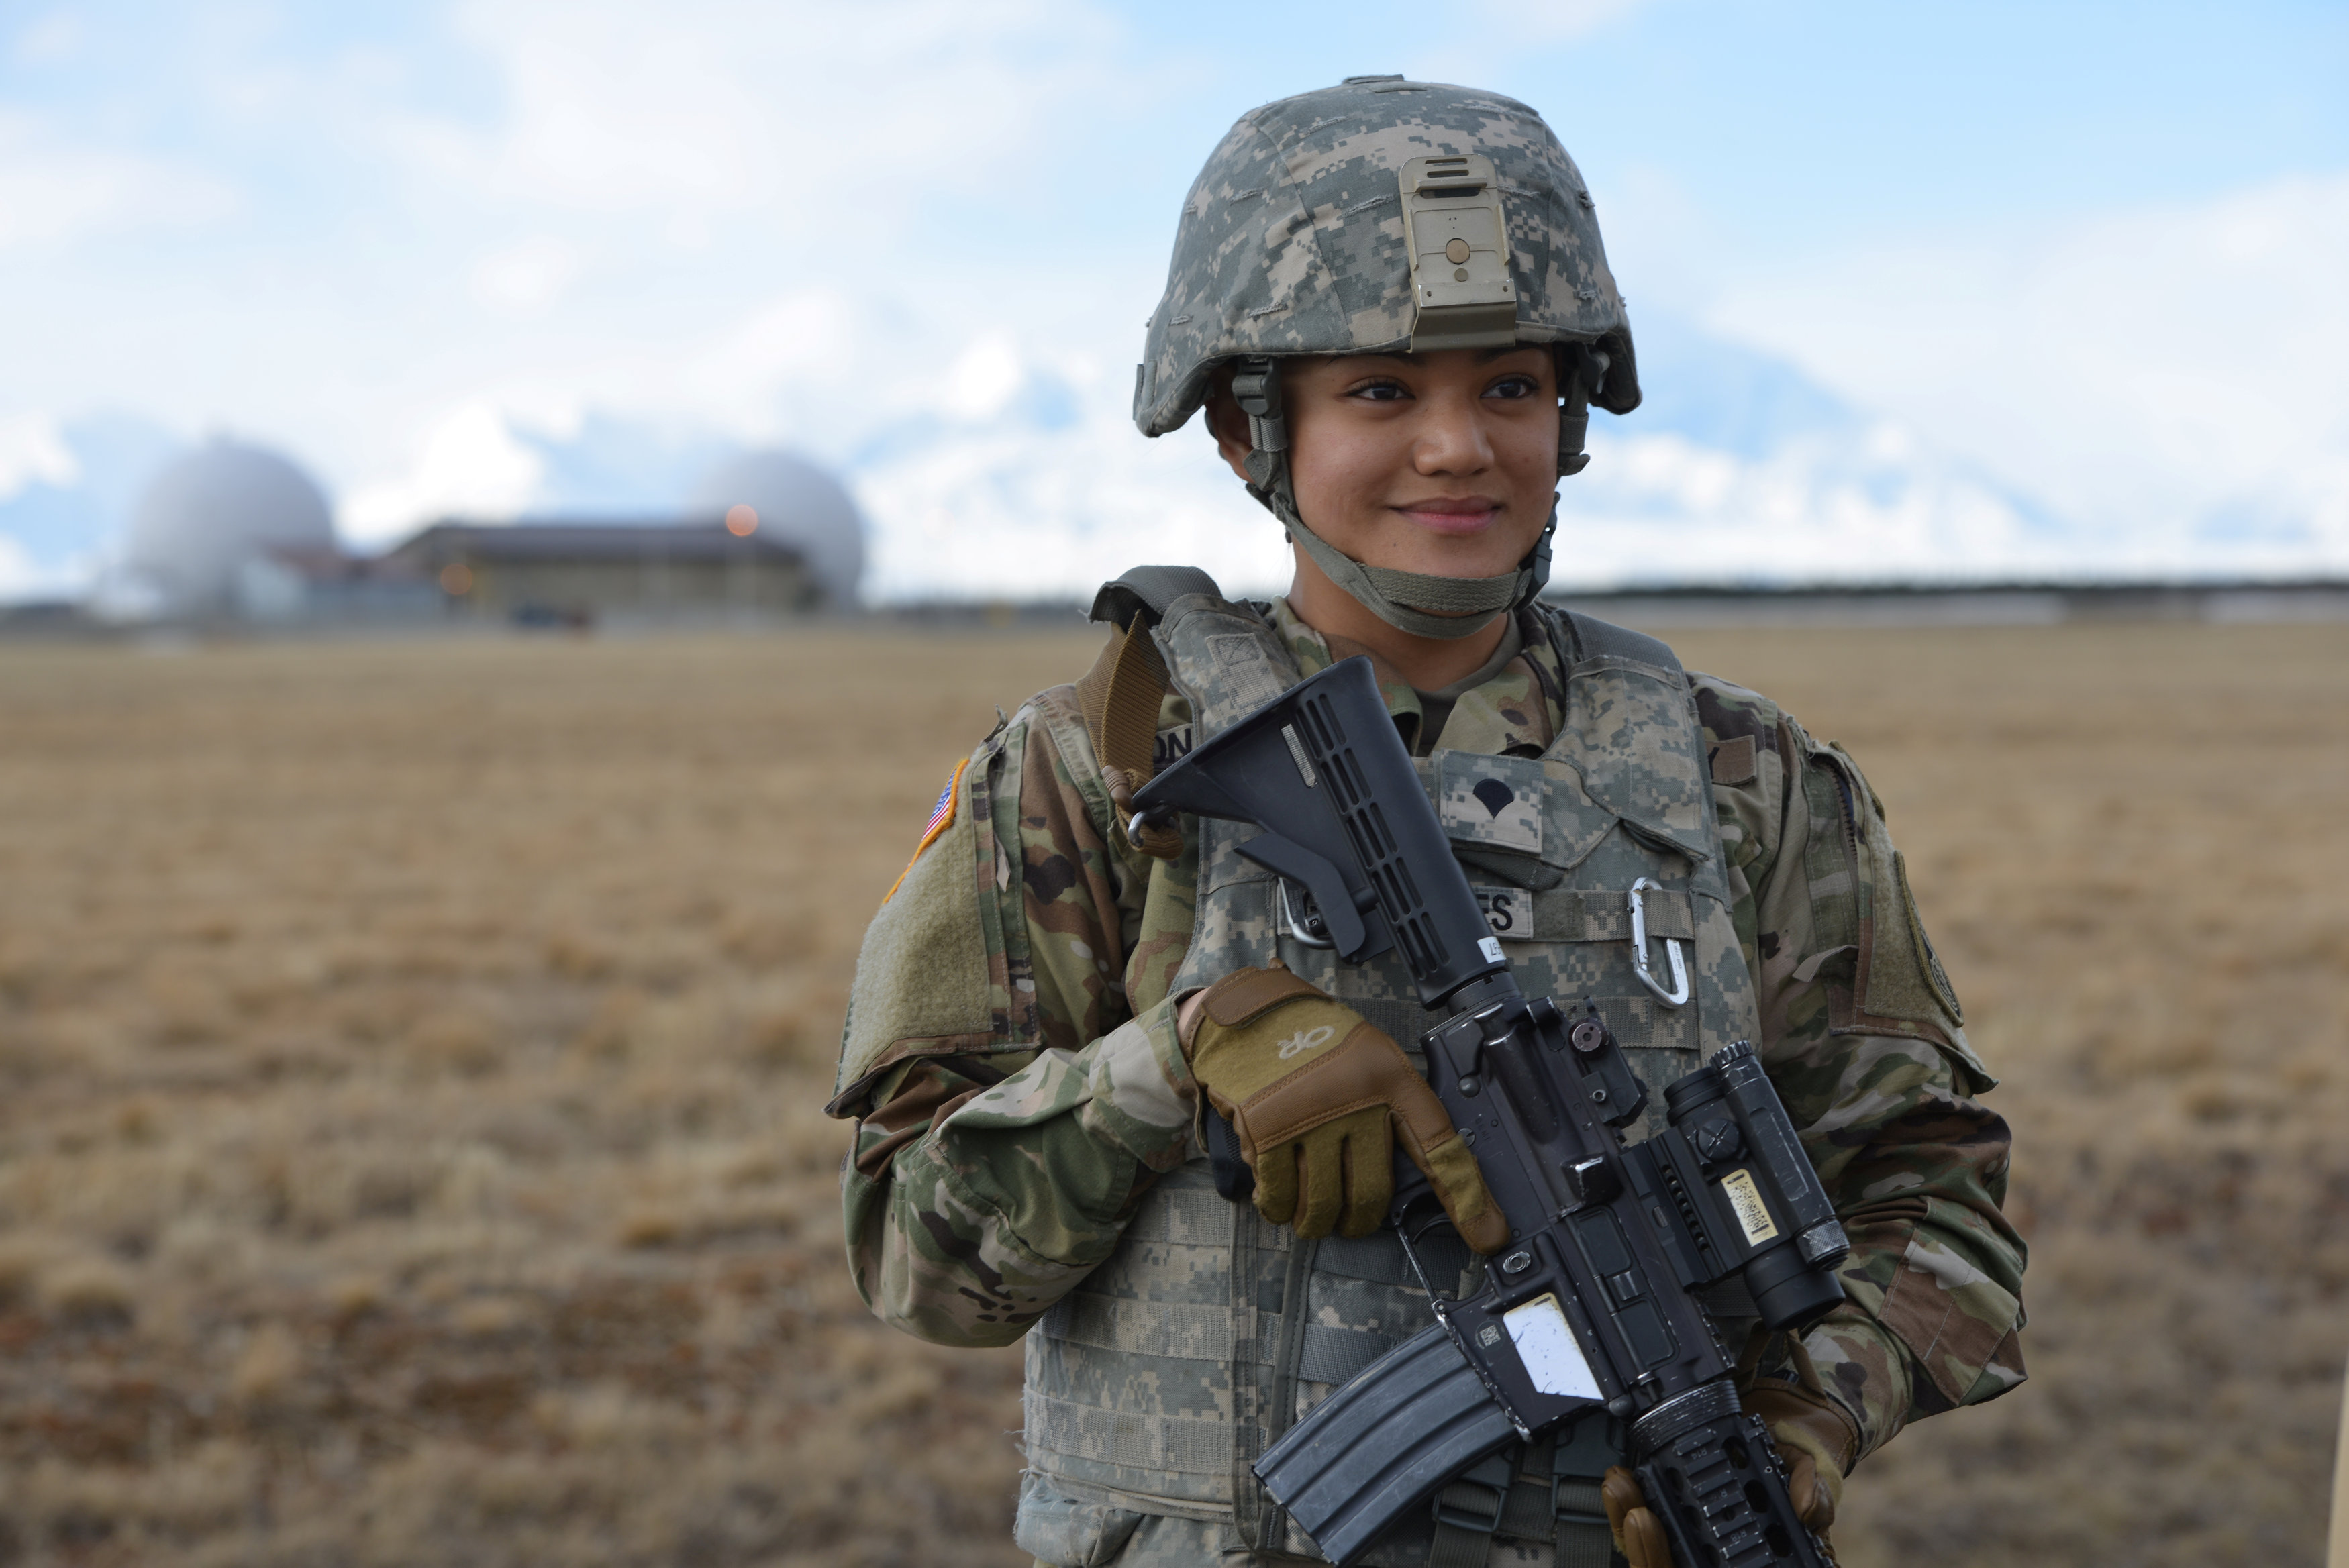 Specialist Sychelle Gonsalves of the 49th Missile Defense Battalion Military Police is pictured at the Ft. Greely missile defense complex in Fort Greely, Alaska, U.S., April 26, 2018. REUTERS/Mark Meyer